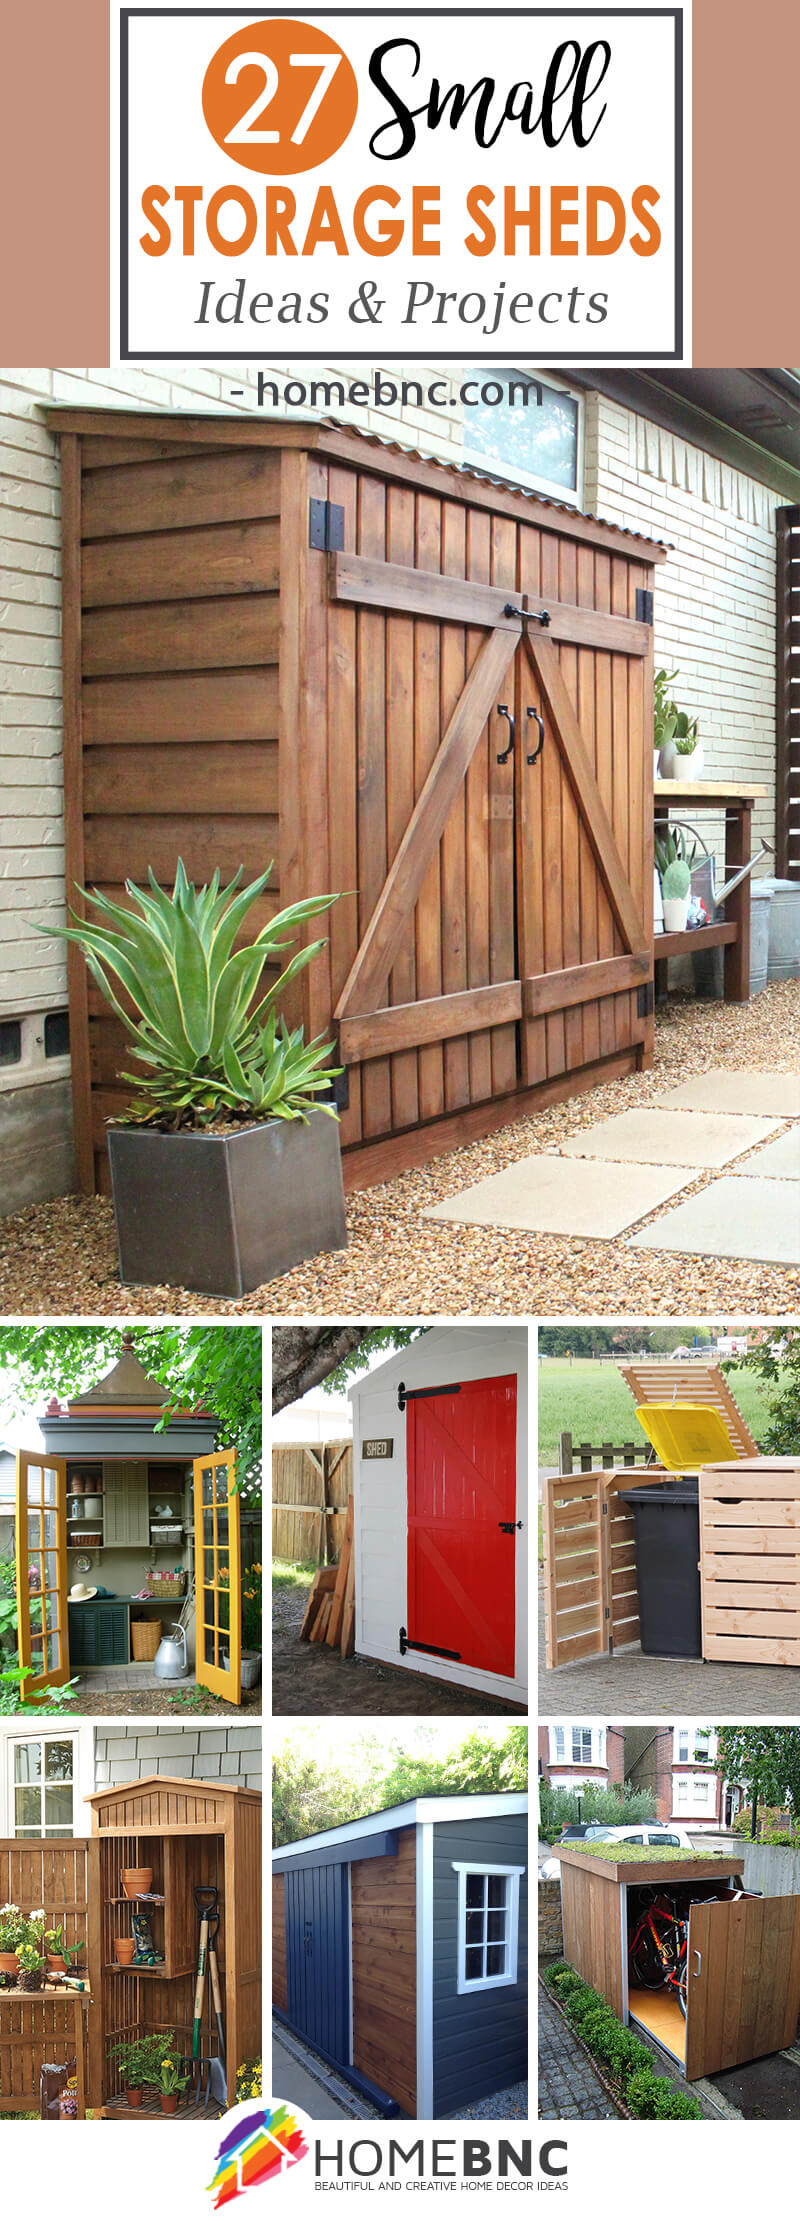 Small Storage Shed Ideas